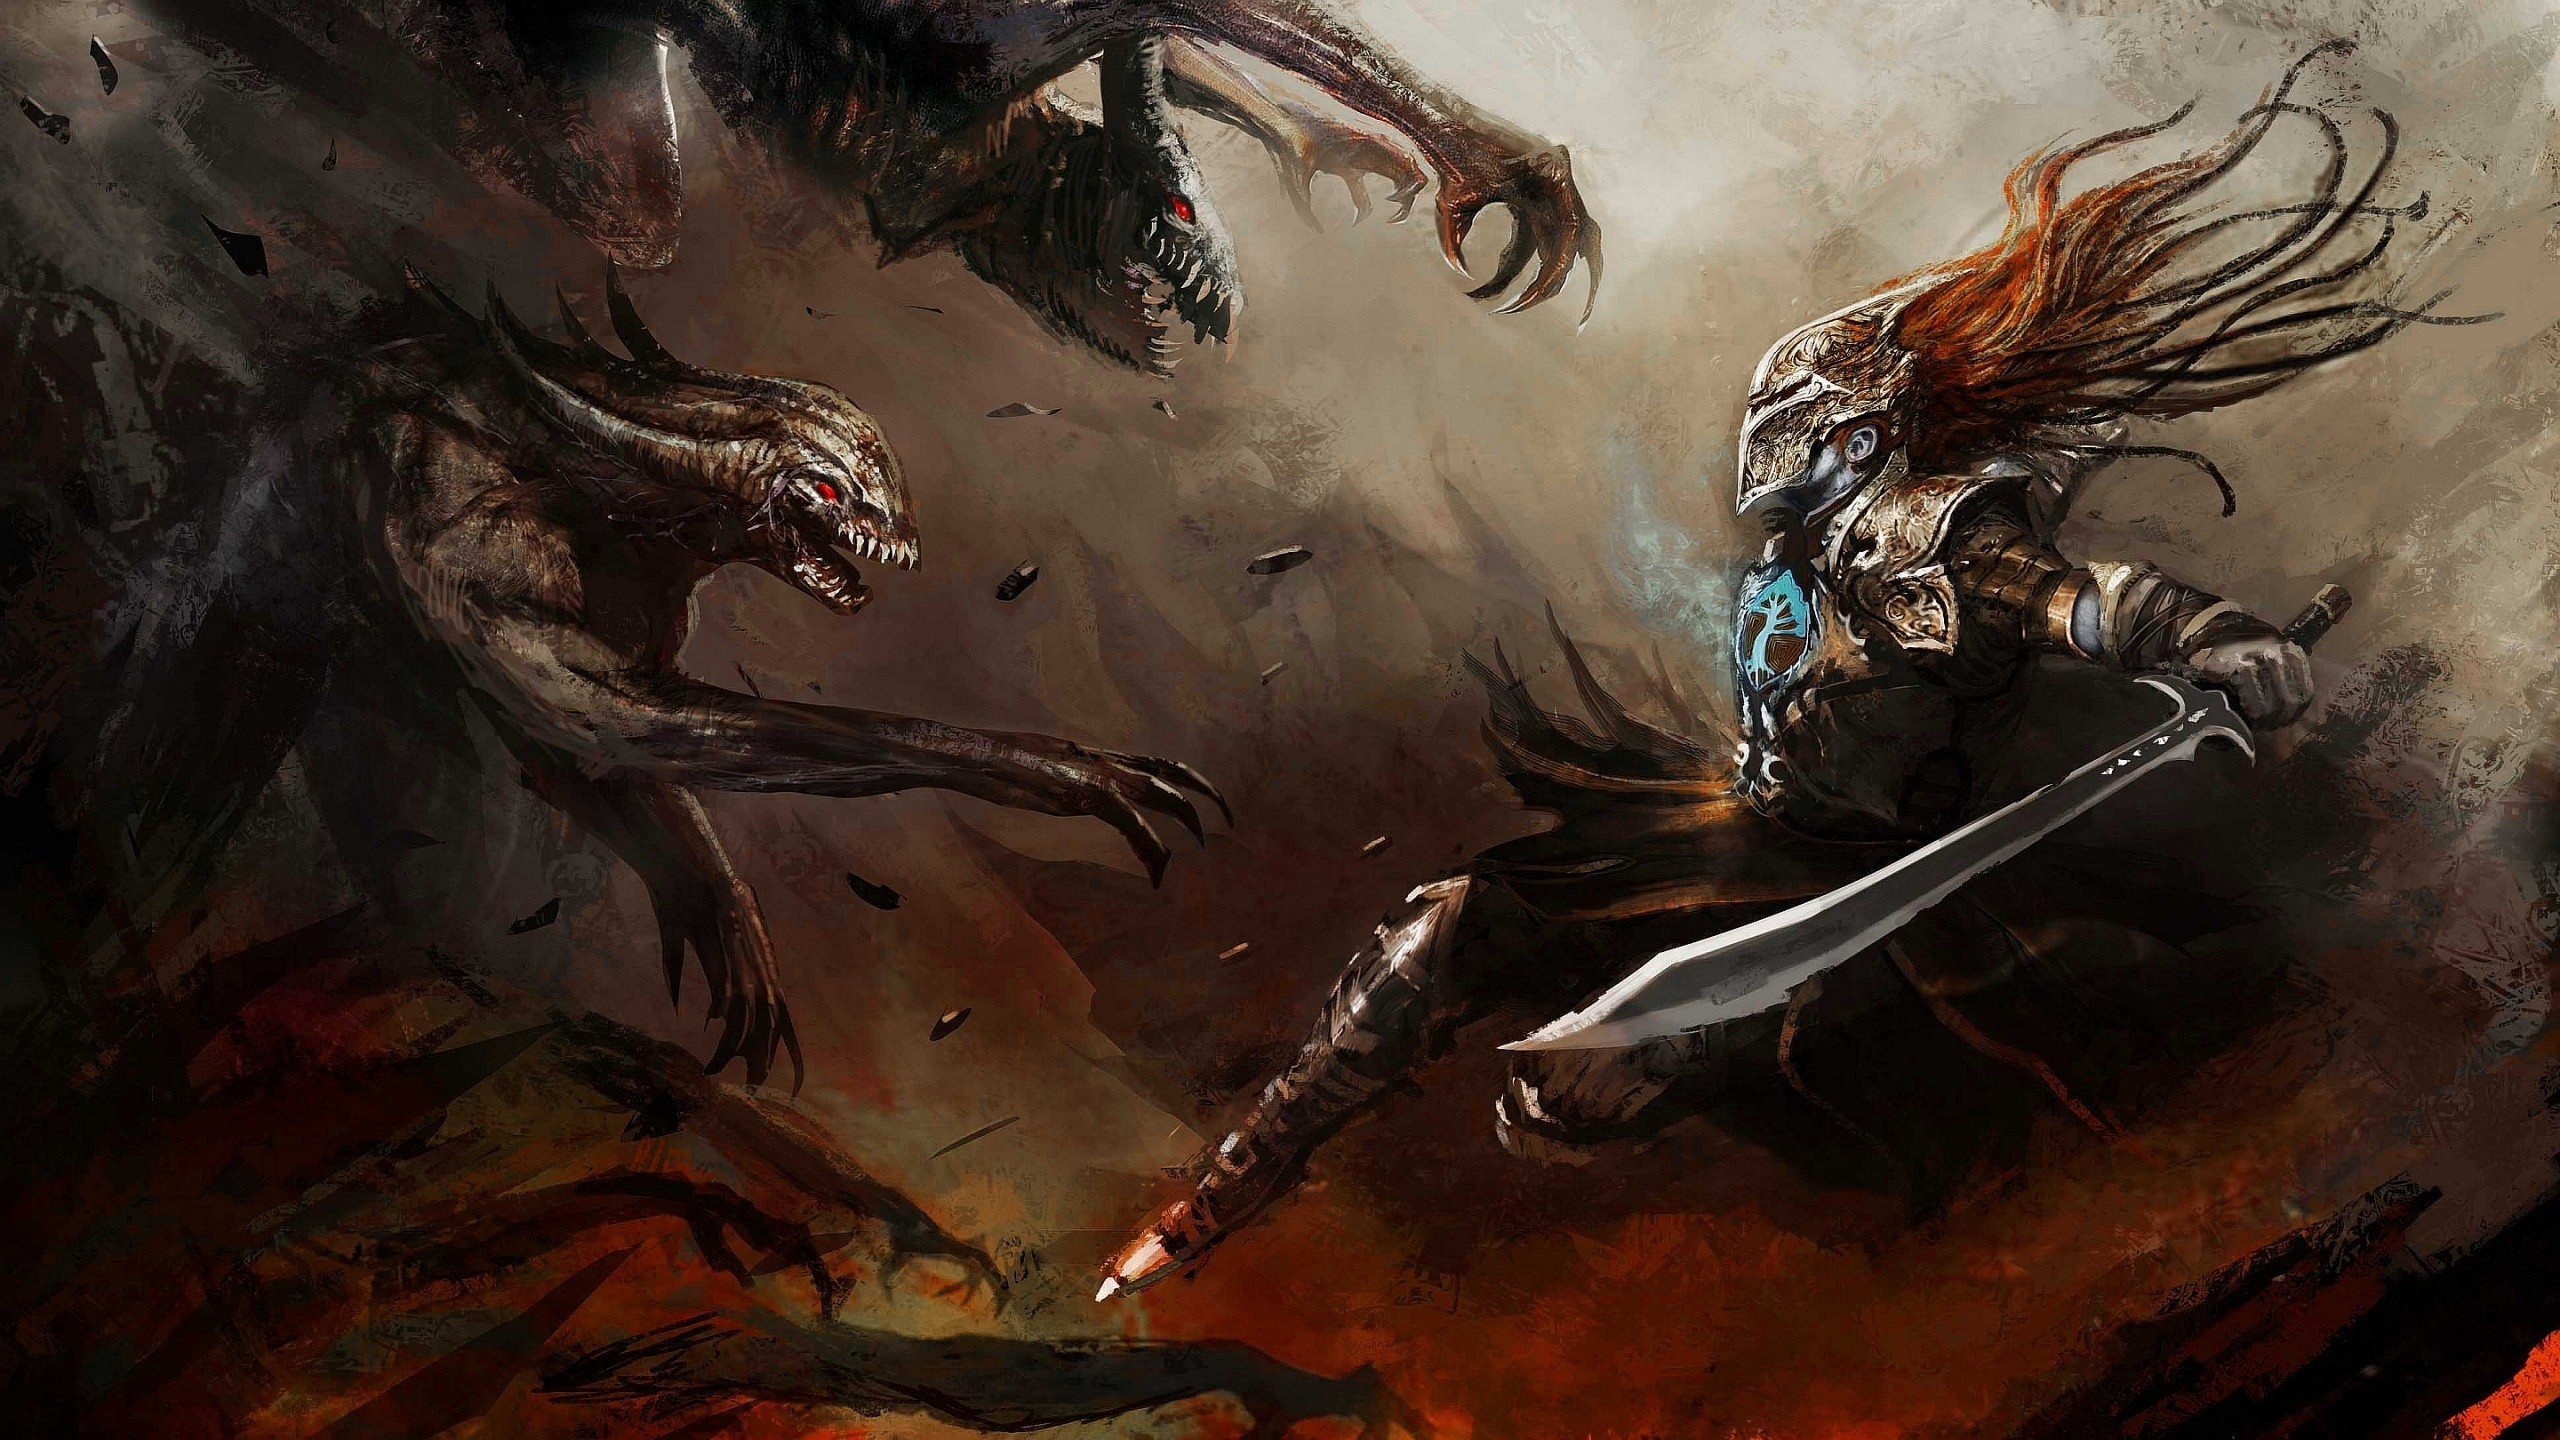 Res: 2560x1440, Fantasy Warrior Wallpaper 21 - 2560 X 1440